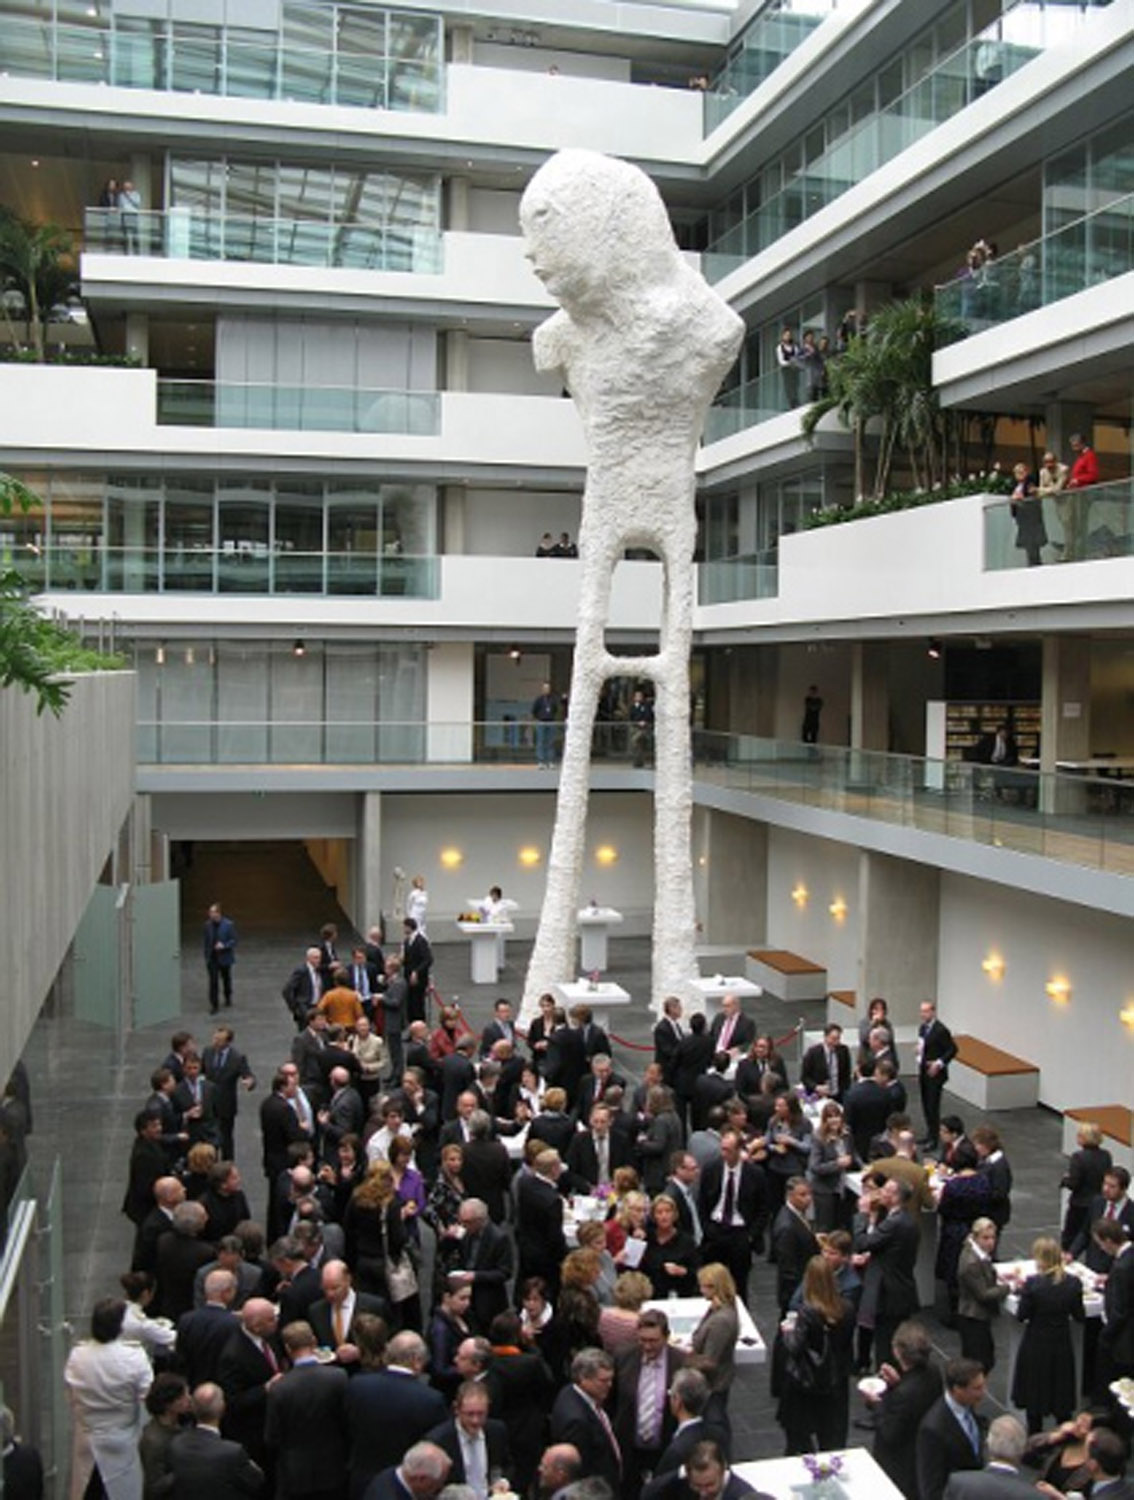 Installation View (New Selsmo, 2009)